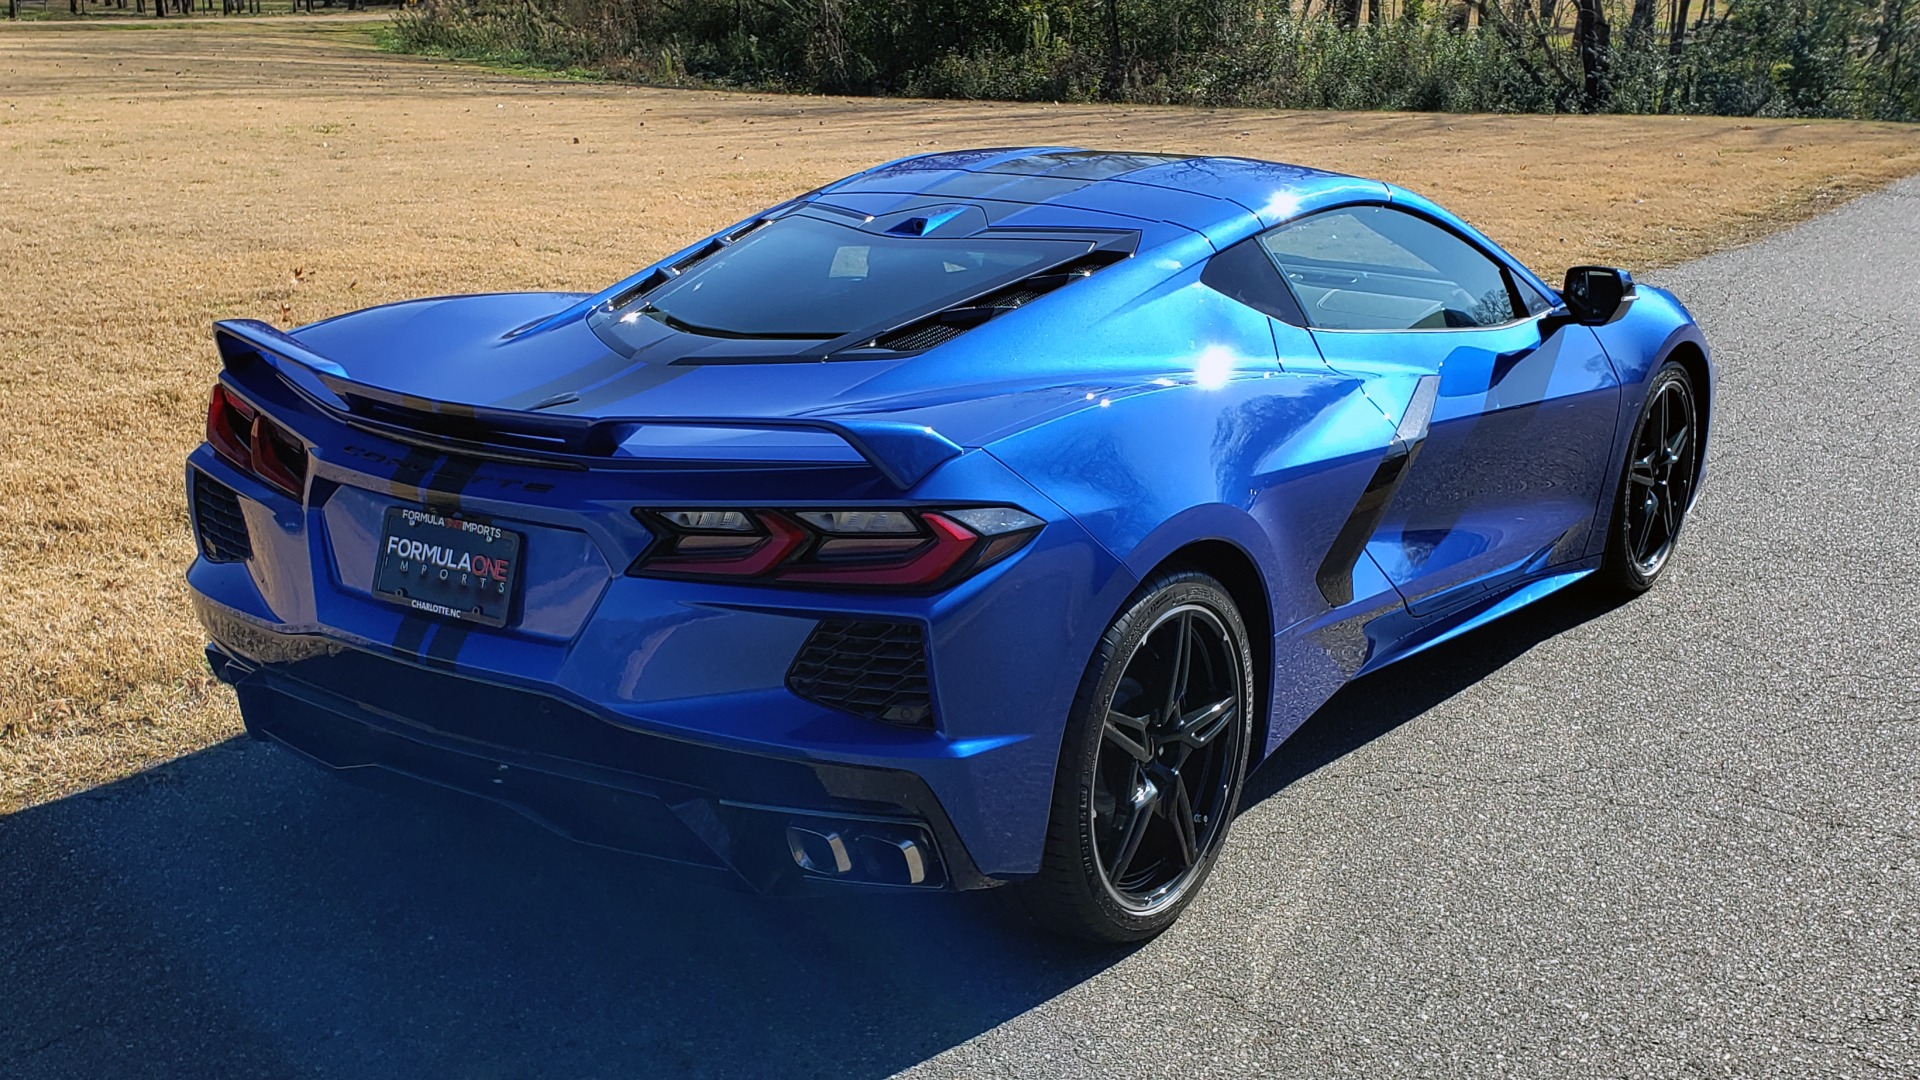 Used 2020 Chevrolet C8 CORVETTE STINGRAY 2LT COUPE / NAV / HUD / BOSE / GT2 SEATS / FRONT LIFT / REARVIEW for sale Sold at Formula Imports in Charlotte NC 28227 10